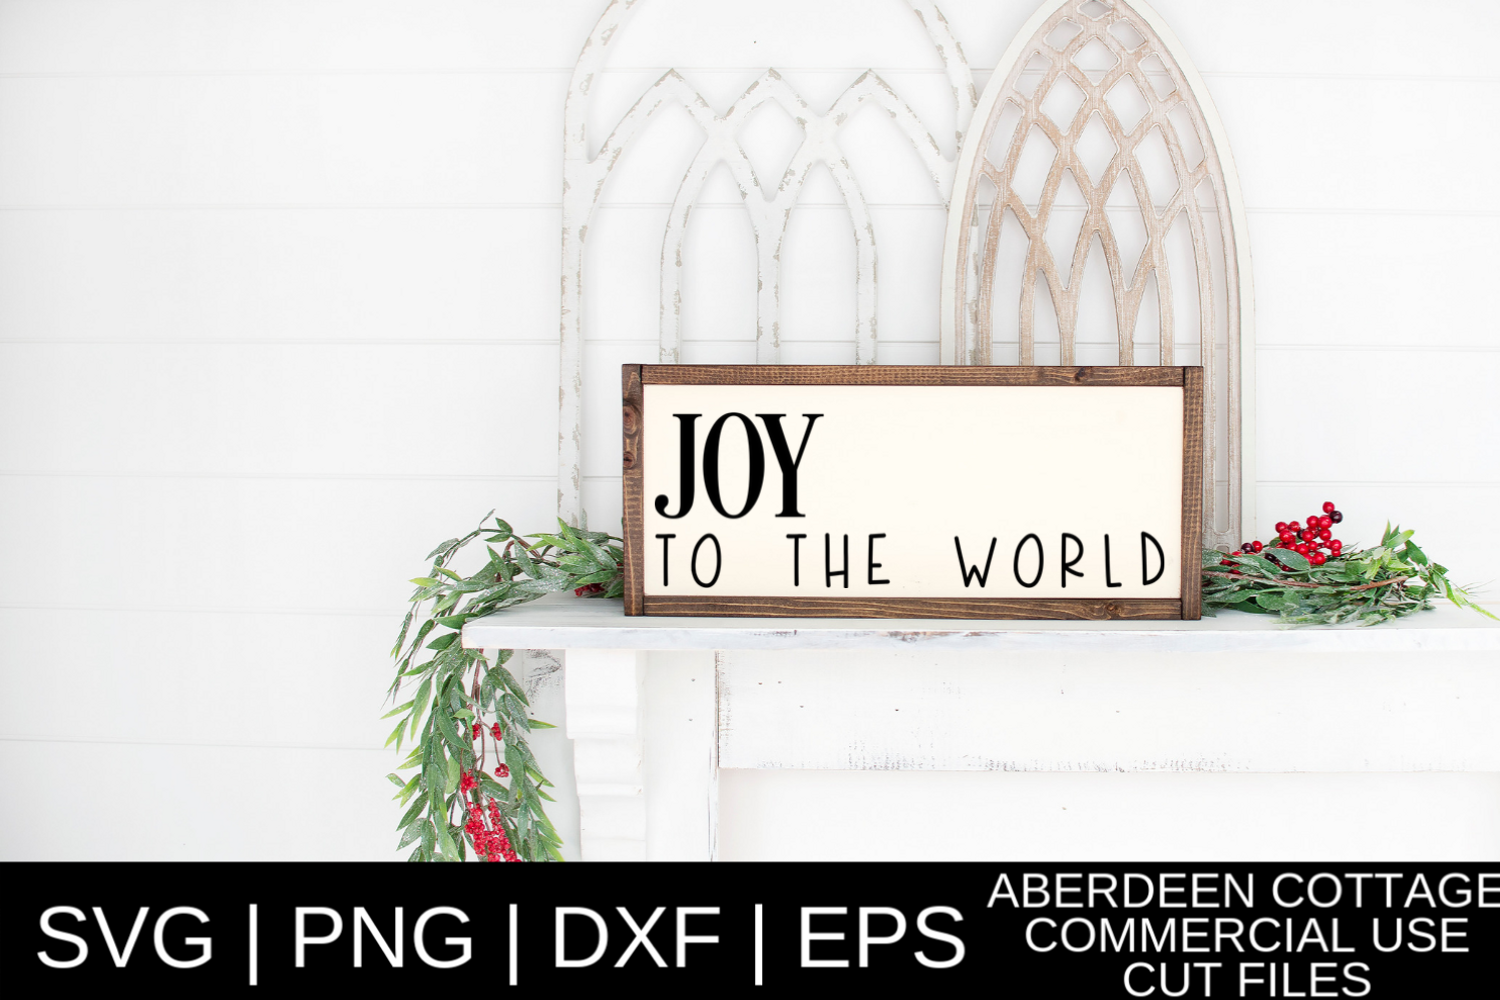 Joy To The World 2 SVG example image 1